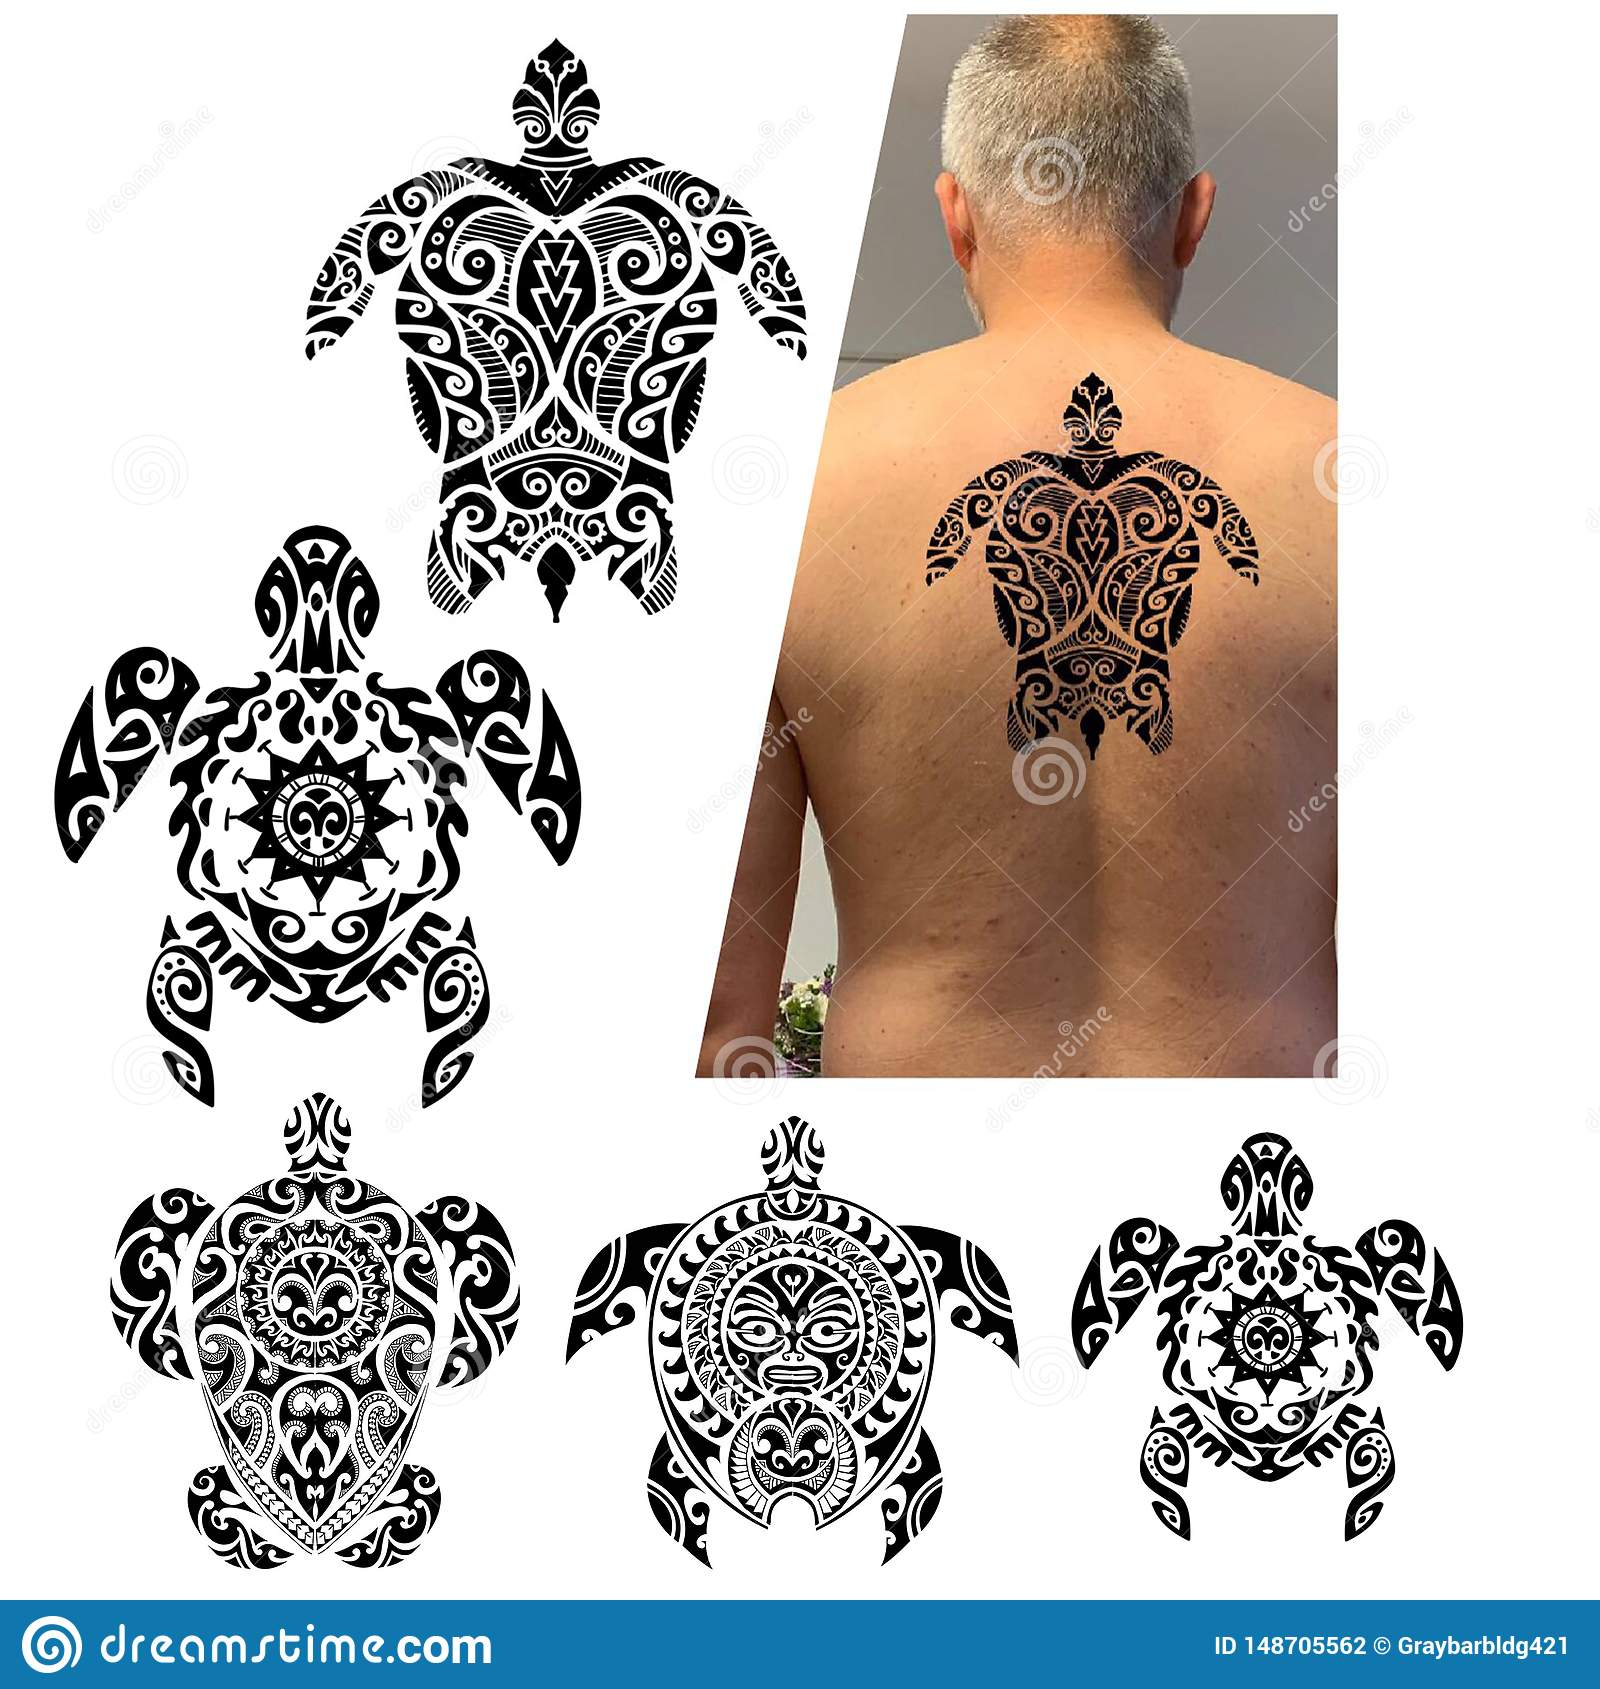 Male body back without clothes